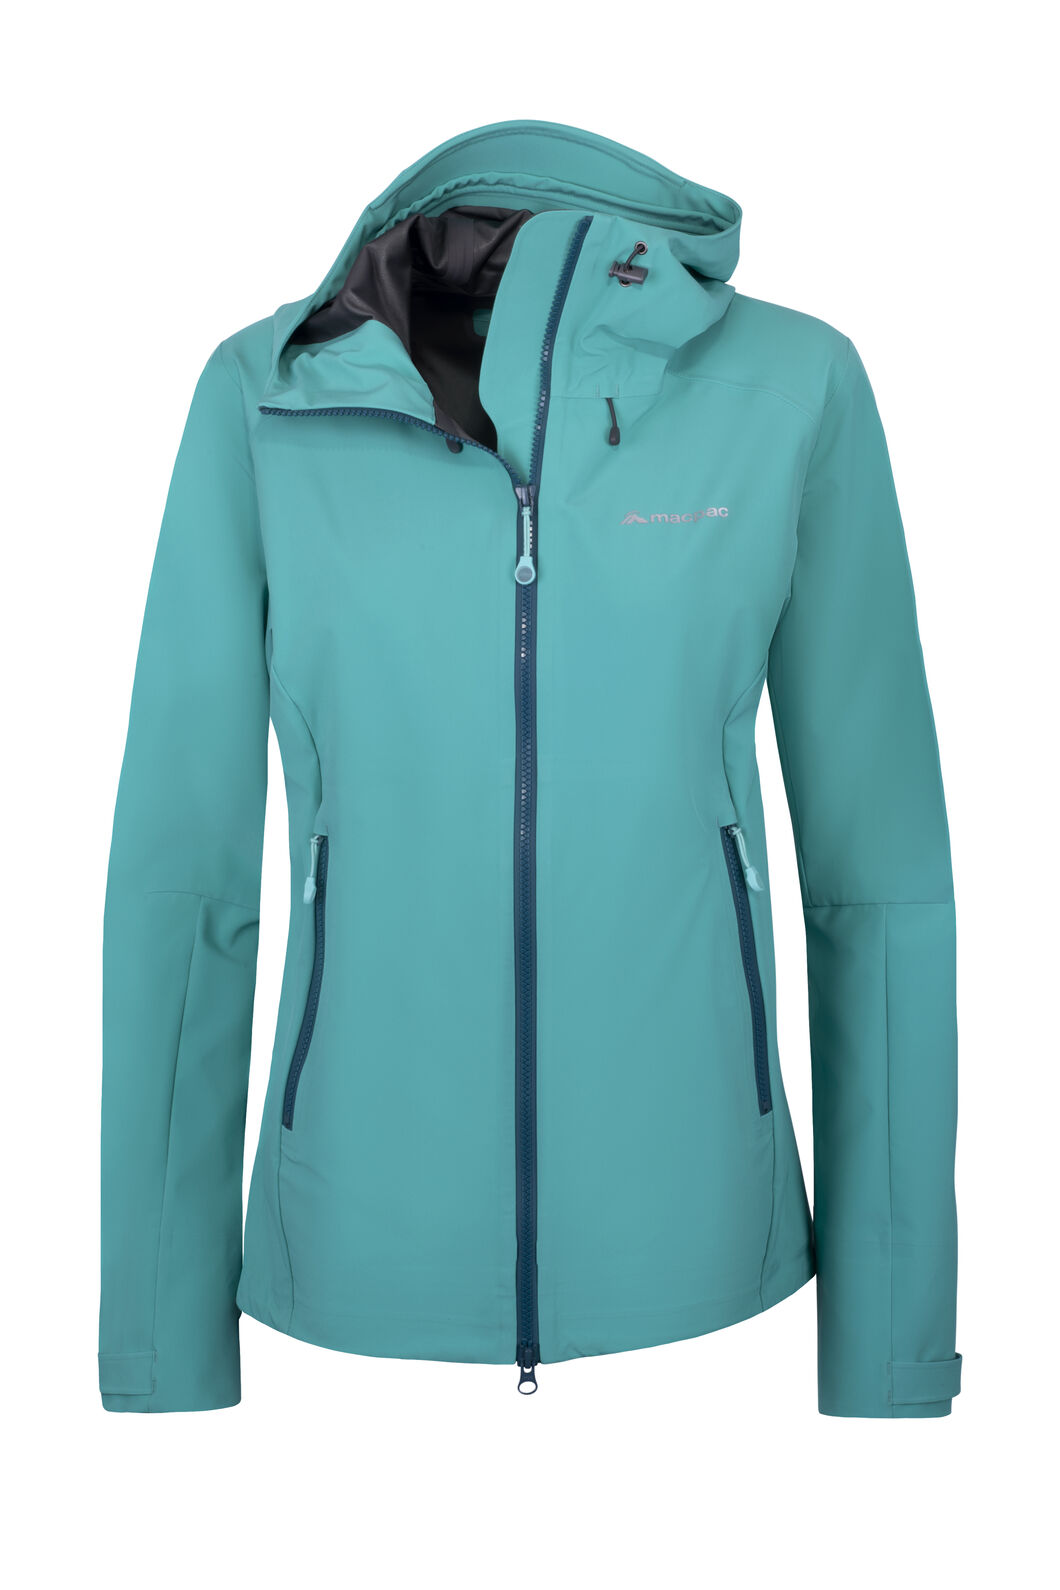 Macpac Fitzroy Alpine Series Softshell Jacket — Women's, Columbia, hi-res